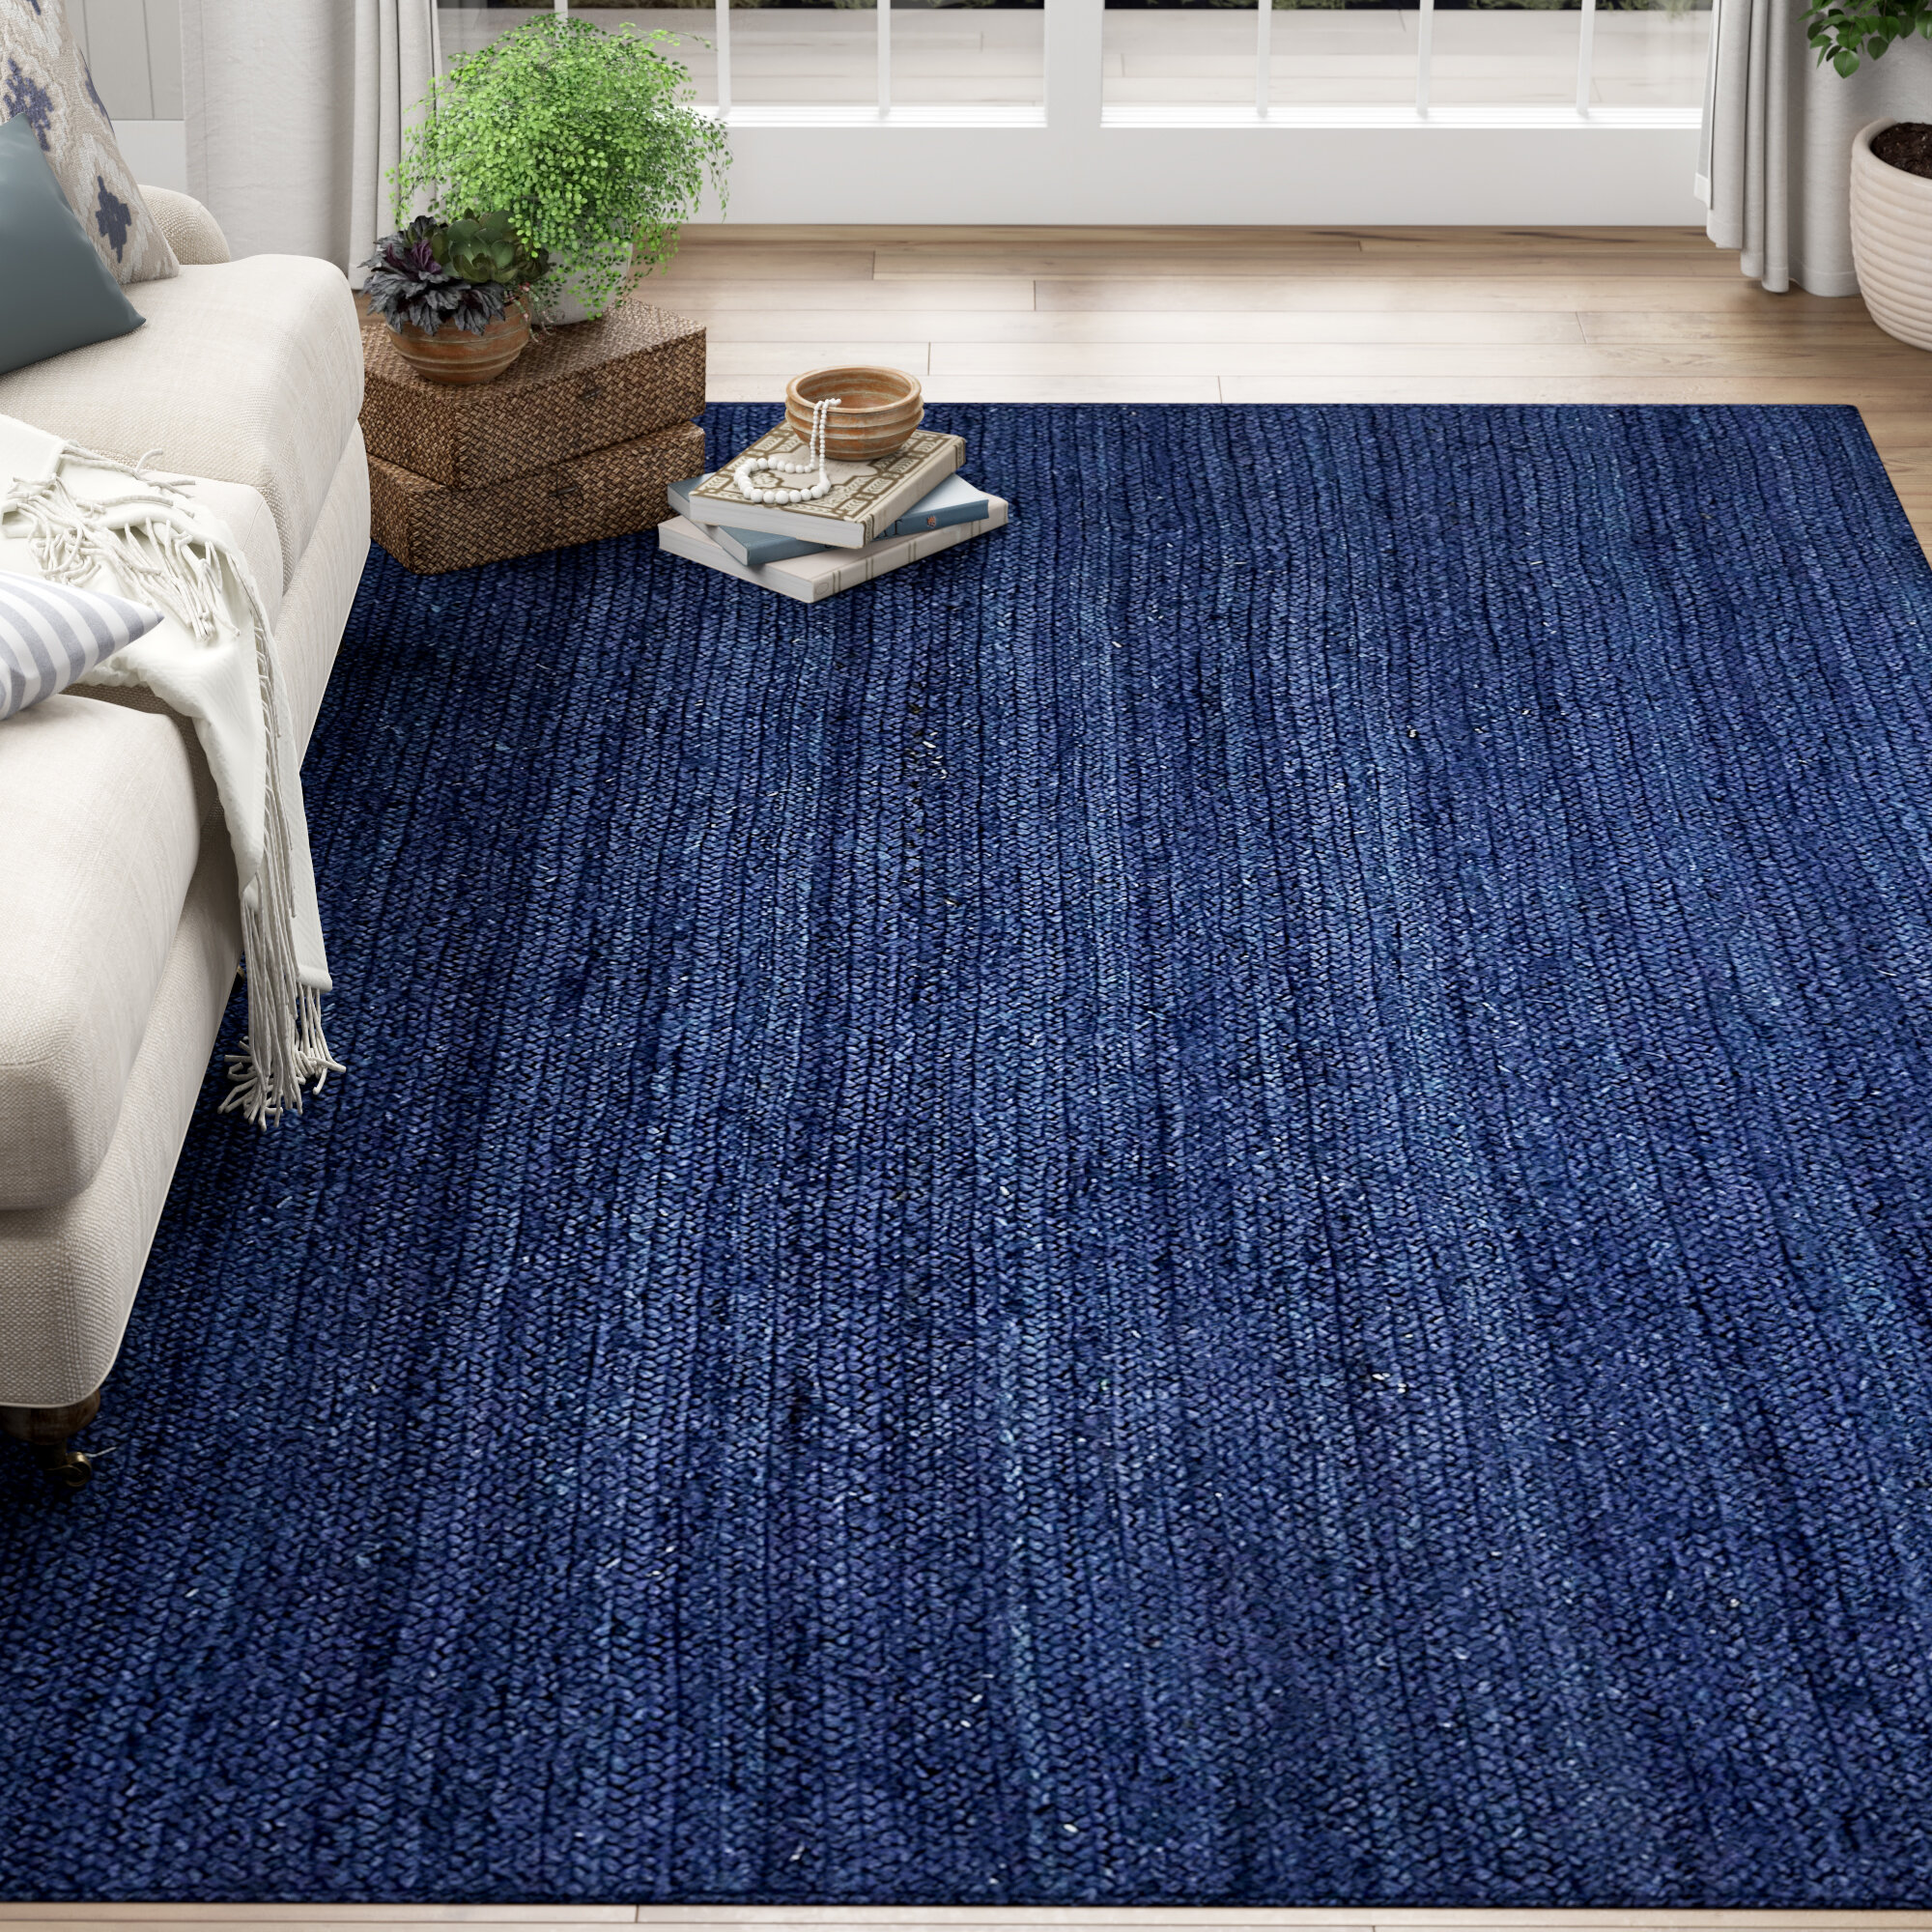 Odense Hand Braided Navy Blue Area Rug